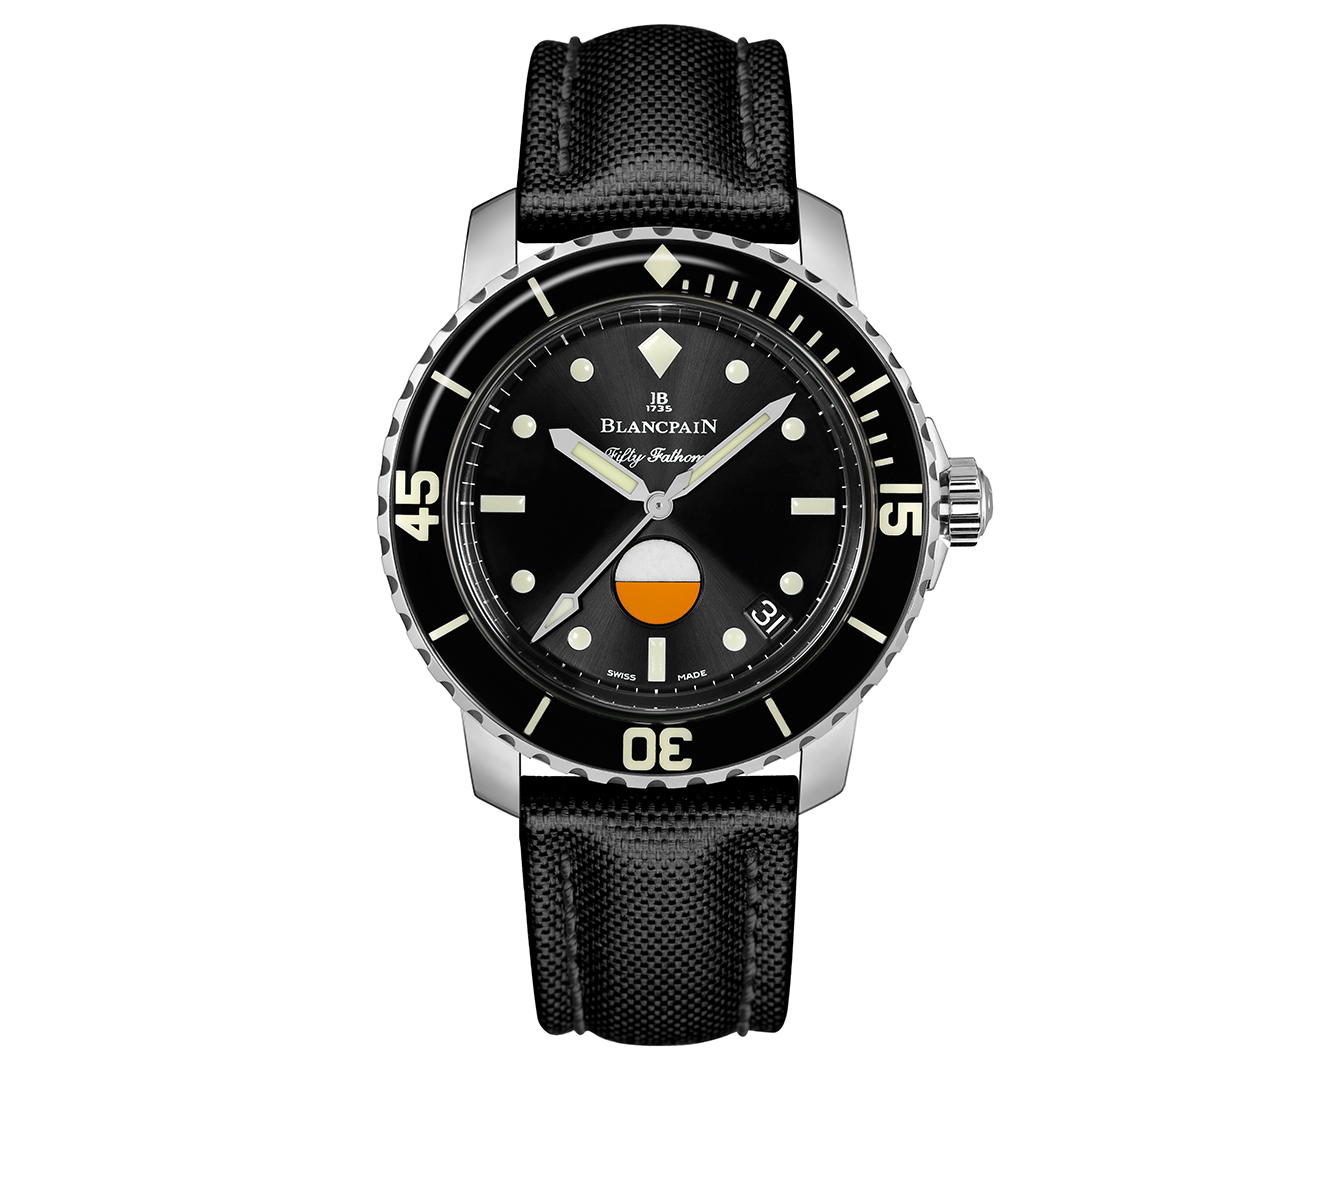 Часы Automatique Blancpain Fifty Fathoms 5008 1130 B52A - фото 1 – Mercury